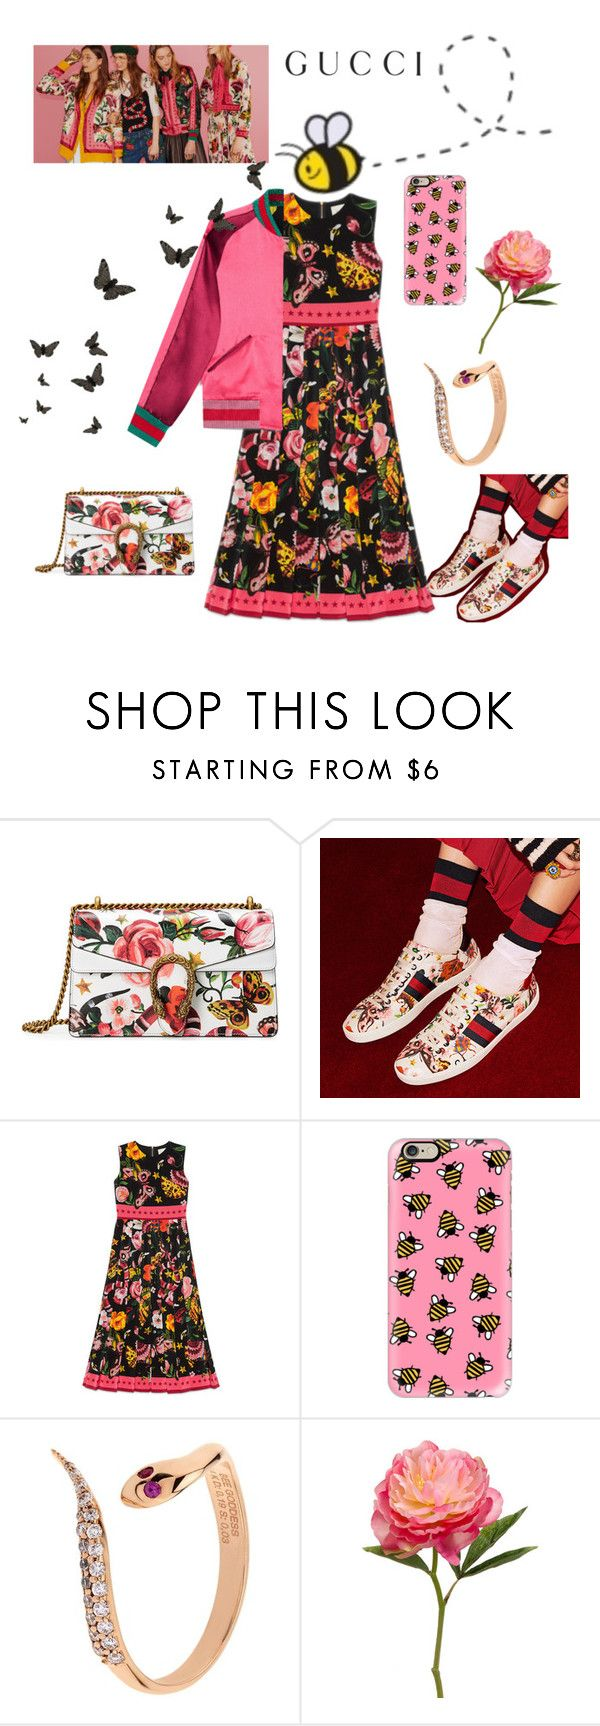 """""""Presenting the Gucci Garden Exclusive Collection: Contest Entry"""" by im-karla-with-a-k ❤ liked on Polyvore featuring Gucci, Casetify, Disney, Bee Goddess and gucci"""